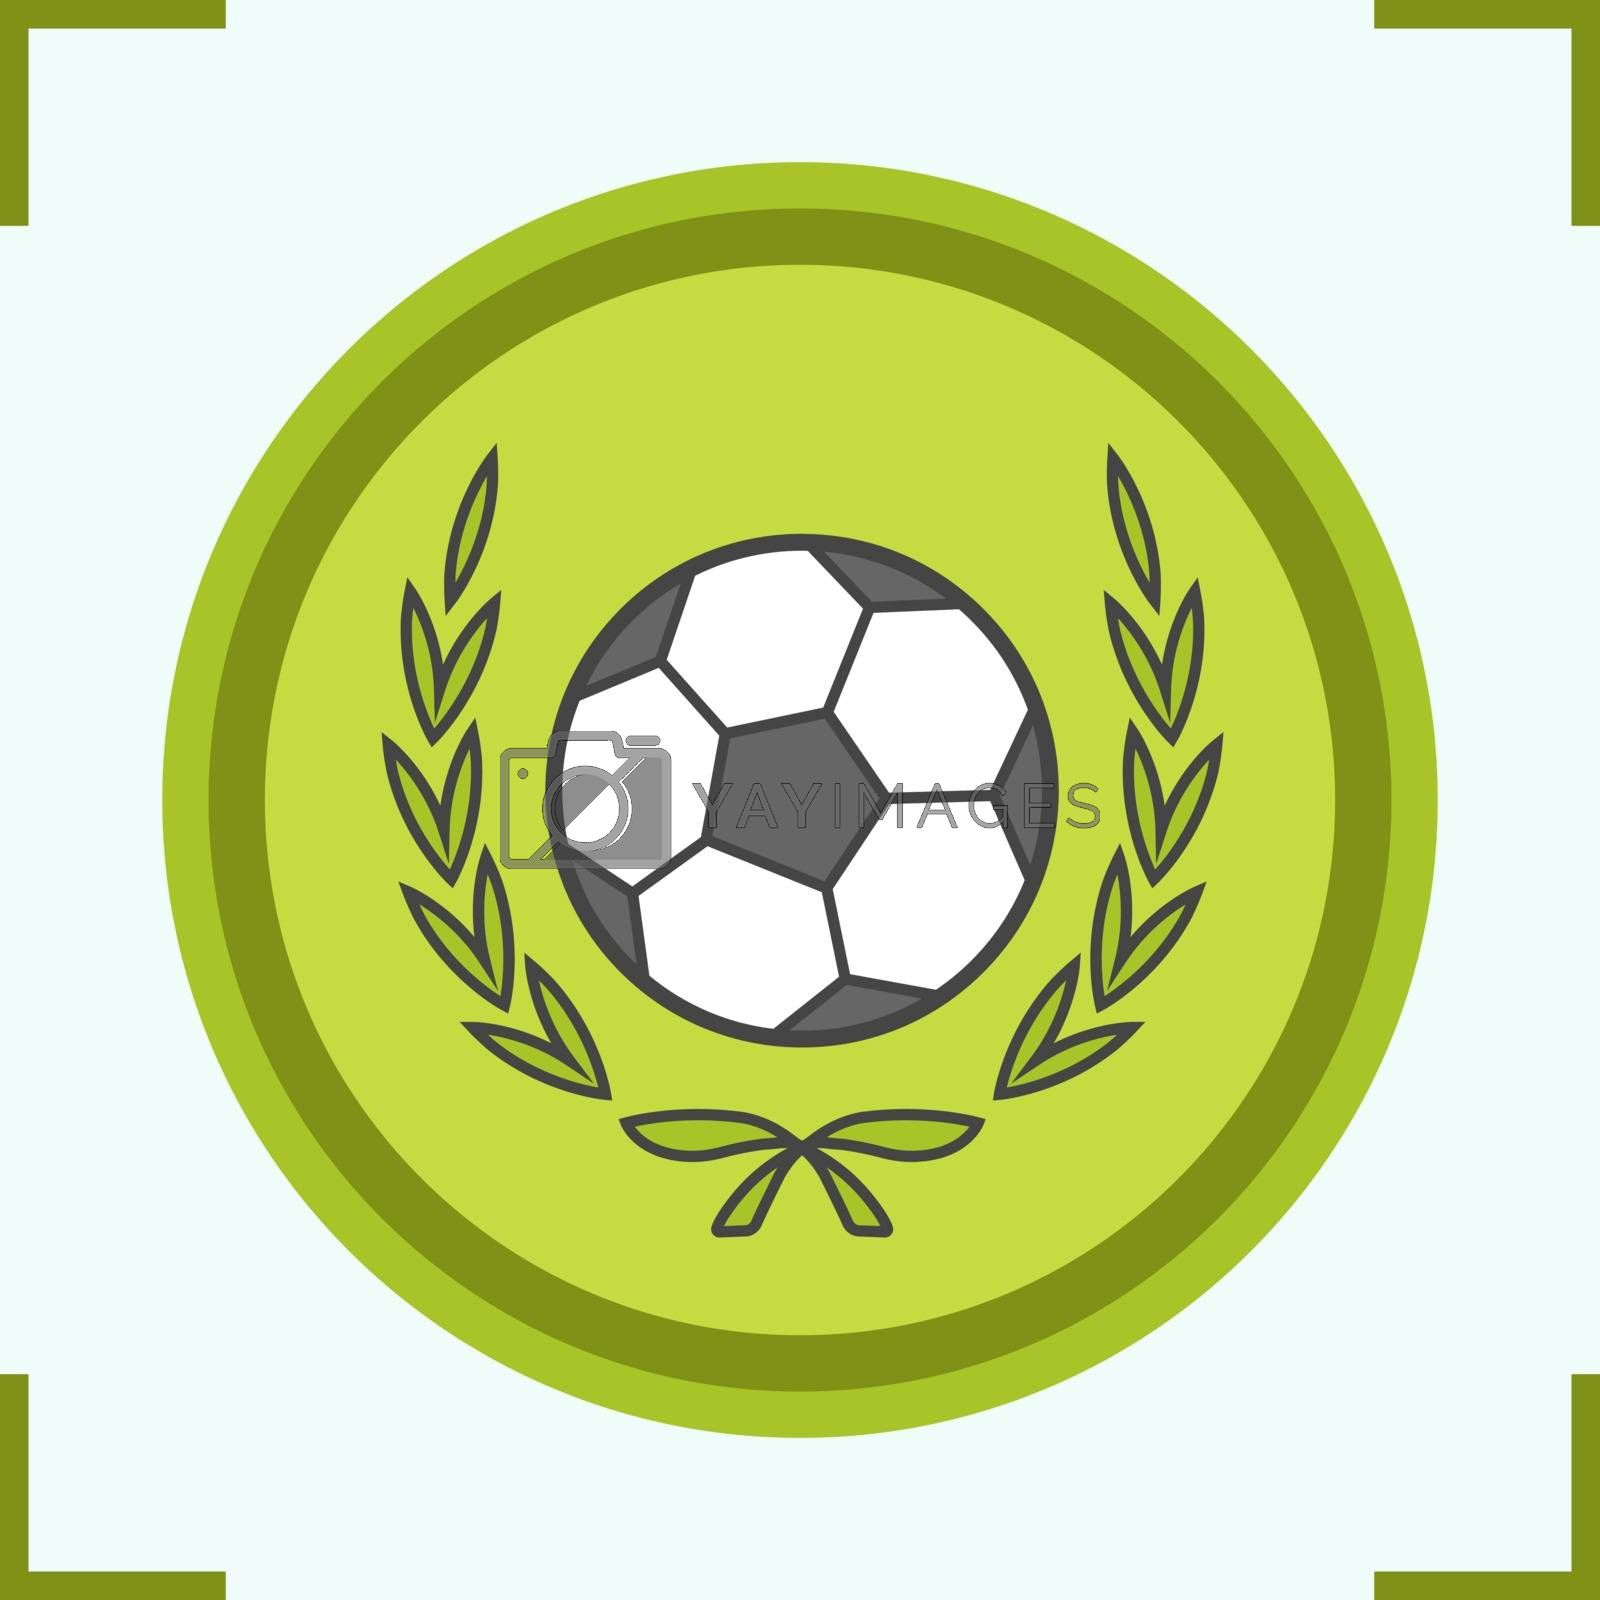 Football championship league color icon. Soccer ball in laurel wreath. Isolated vector illustration